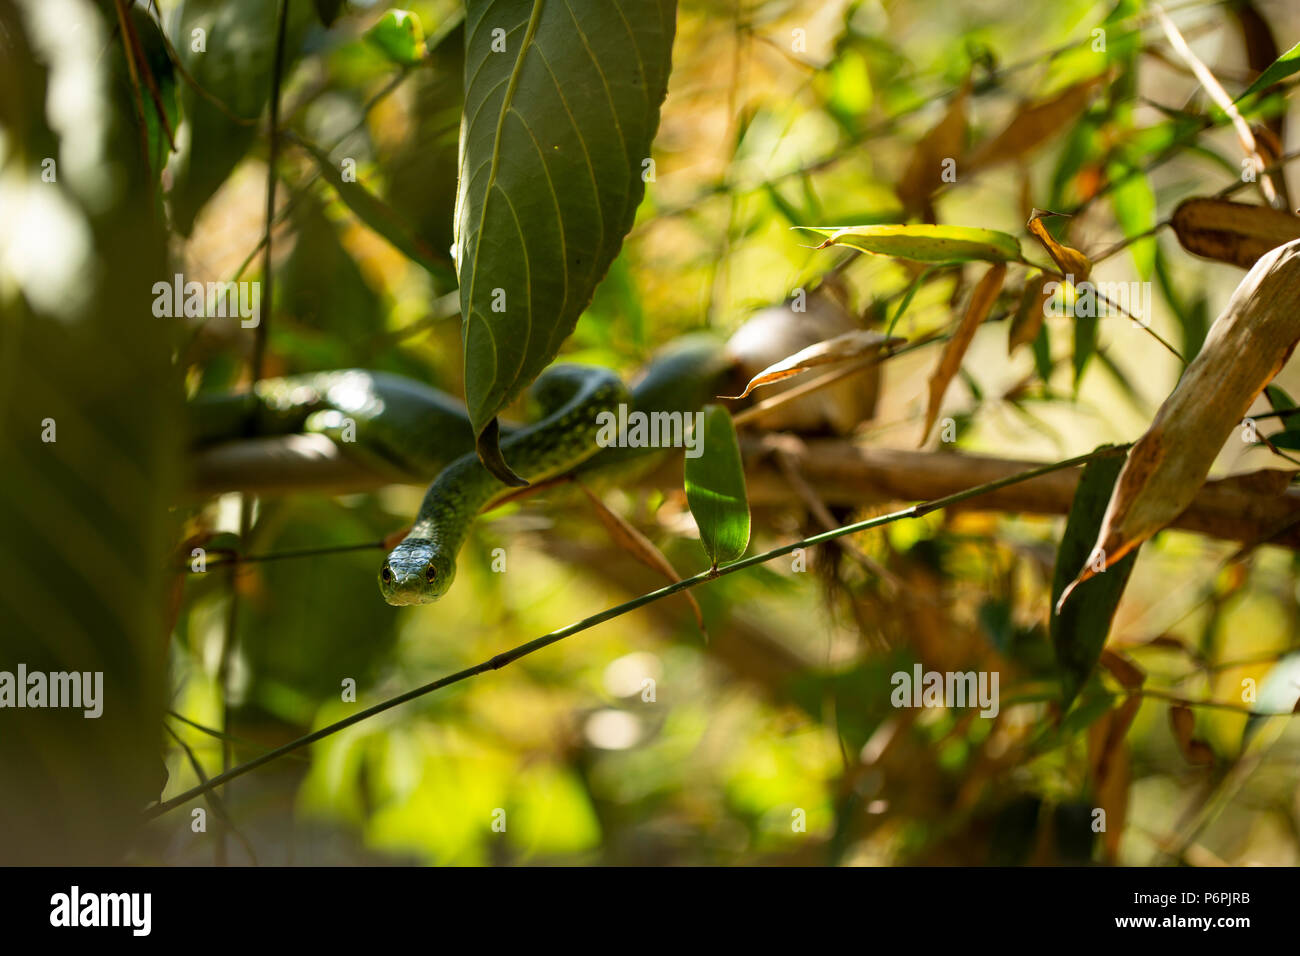 An Angola green snake/ Western Snake waiting on some bamboo for prey. - Stock Image